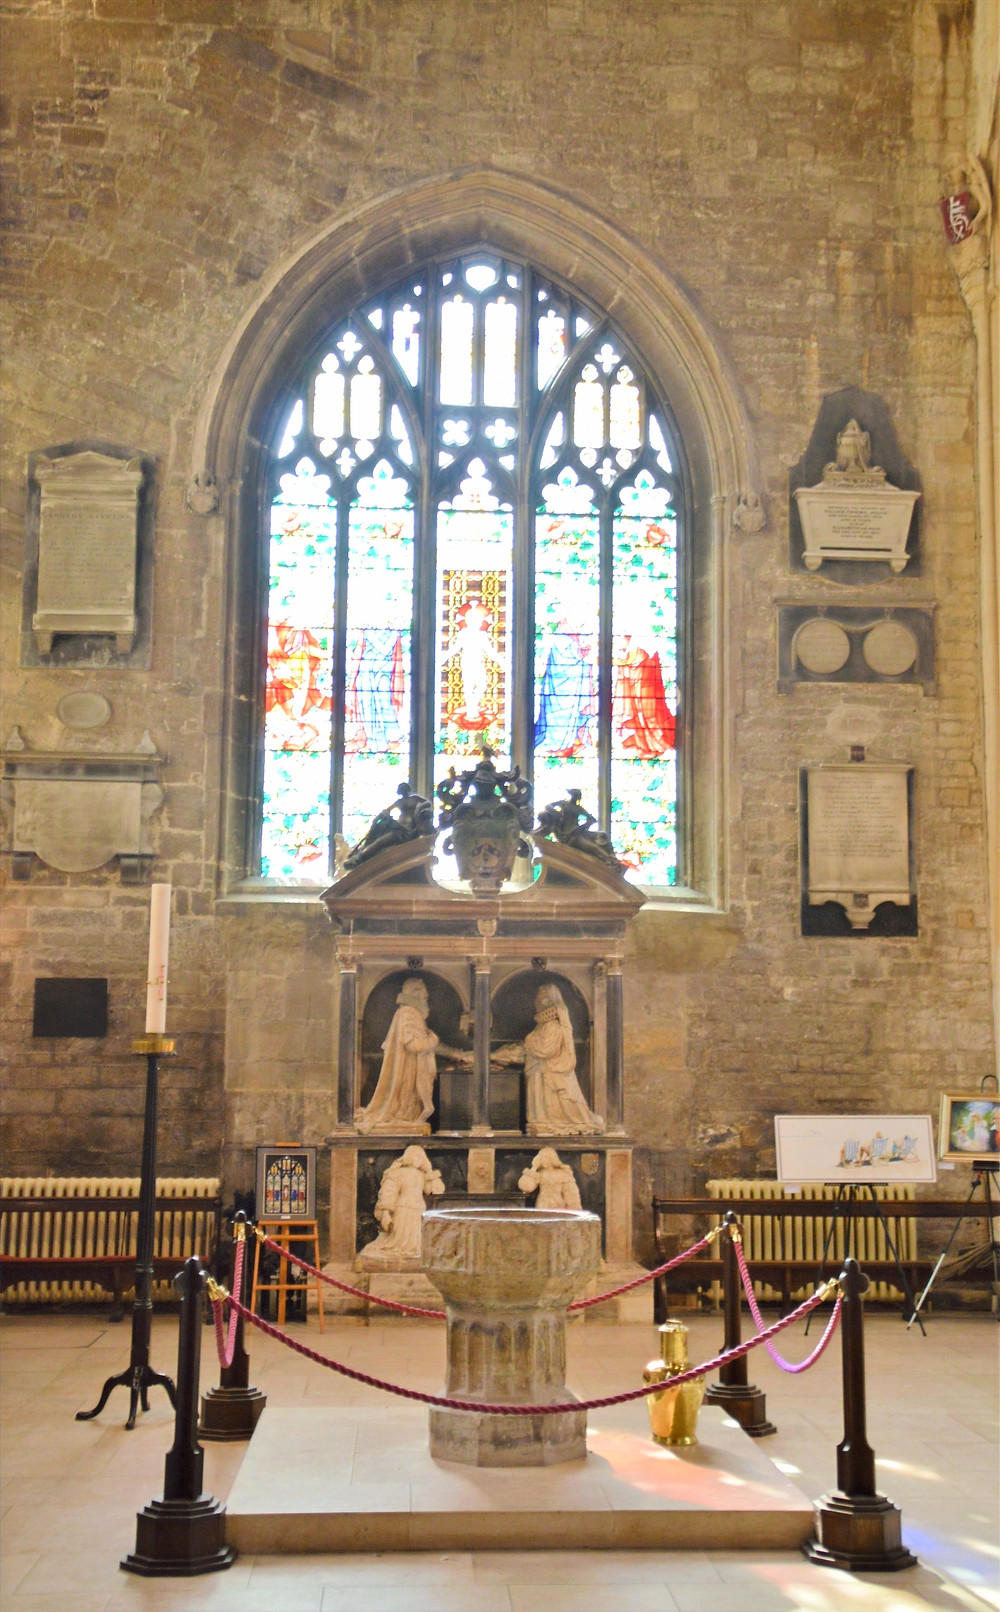 14th century baptismal font and tomb of George Monox in Cathedral of the Cotswolds, St. John the Baptist in Cirencester of the Cotswolds